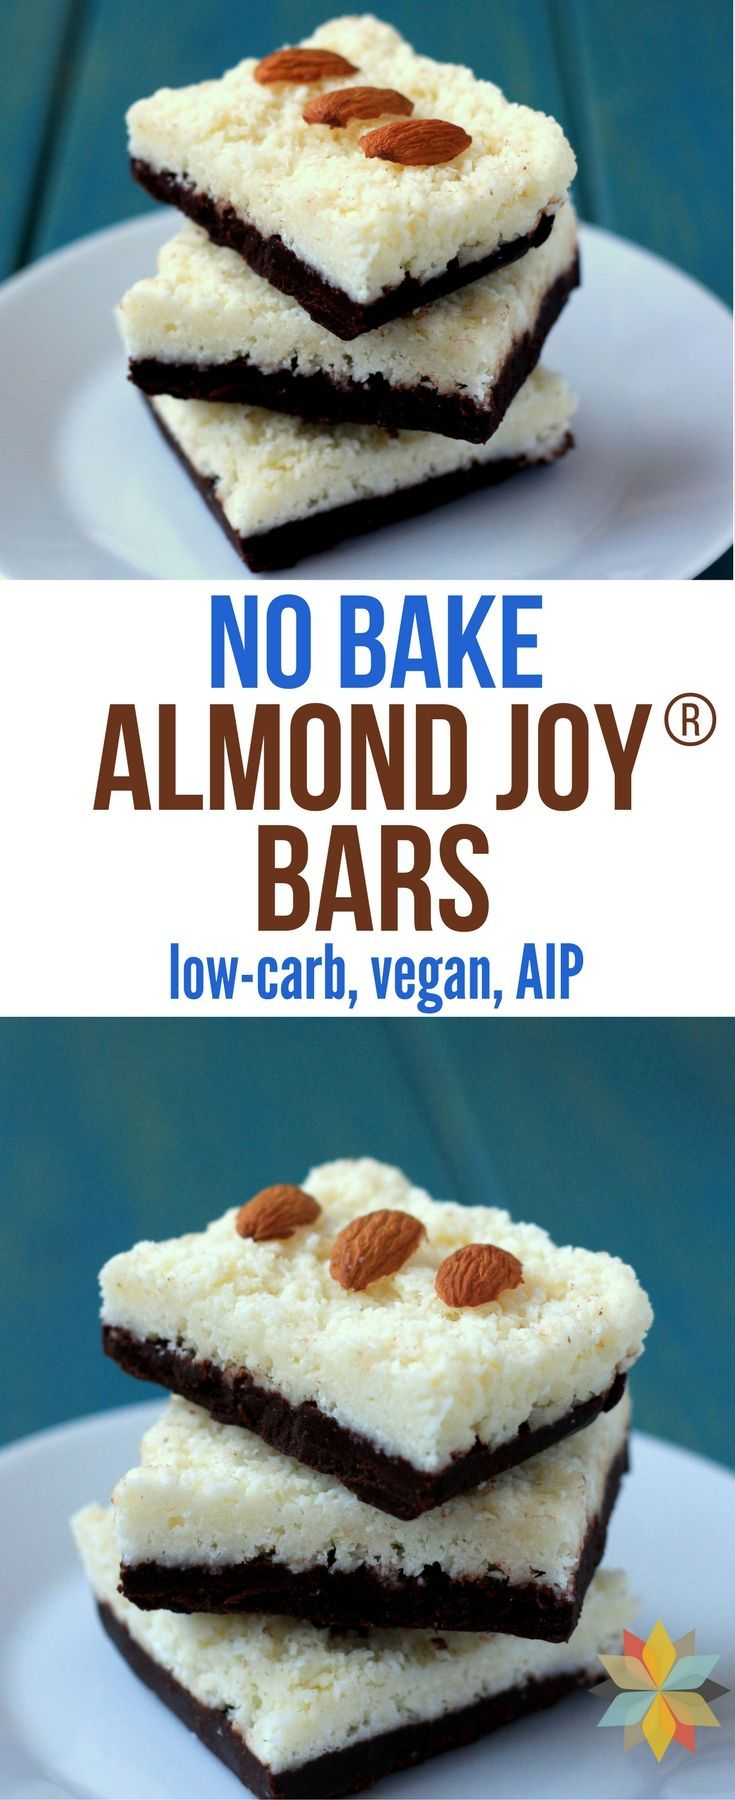 These No-Bake Almond Joy Bars are AMAZING! They're easy to make, freeze well & are loaded with healthy ingredients. Low-carb, paleo, & AIP. via @wholenewmom